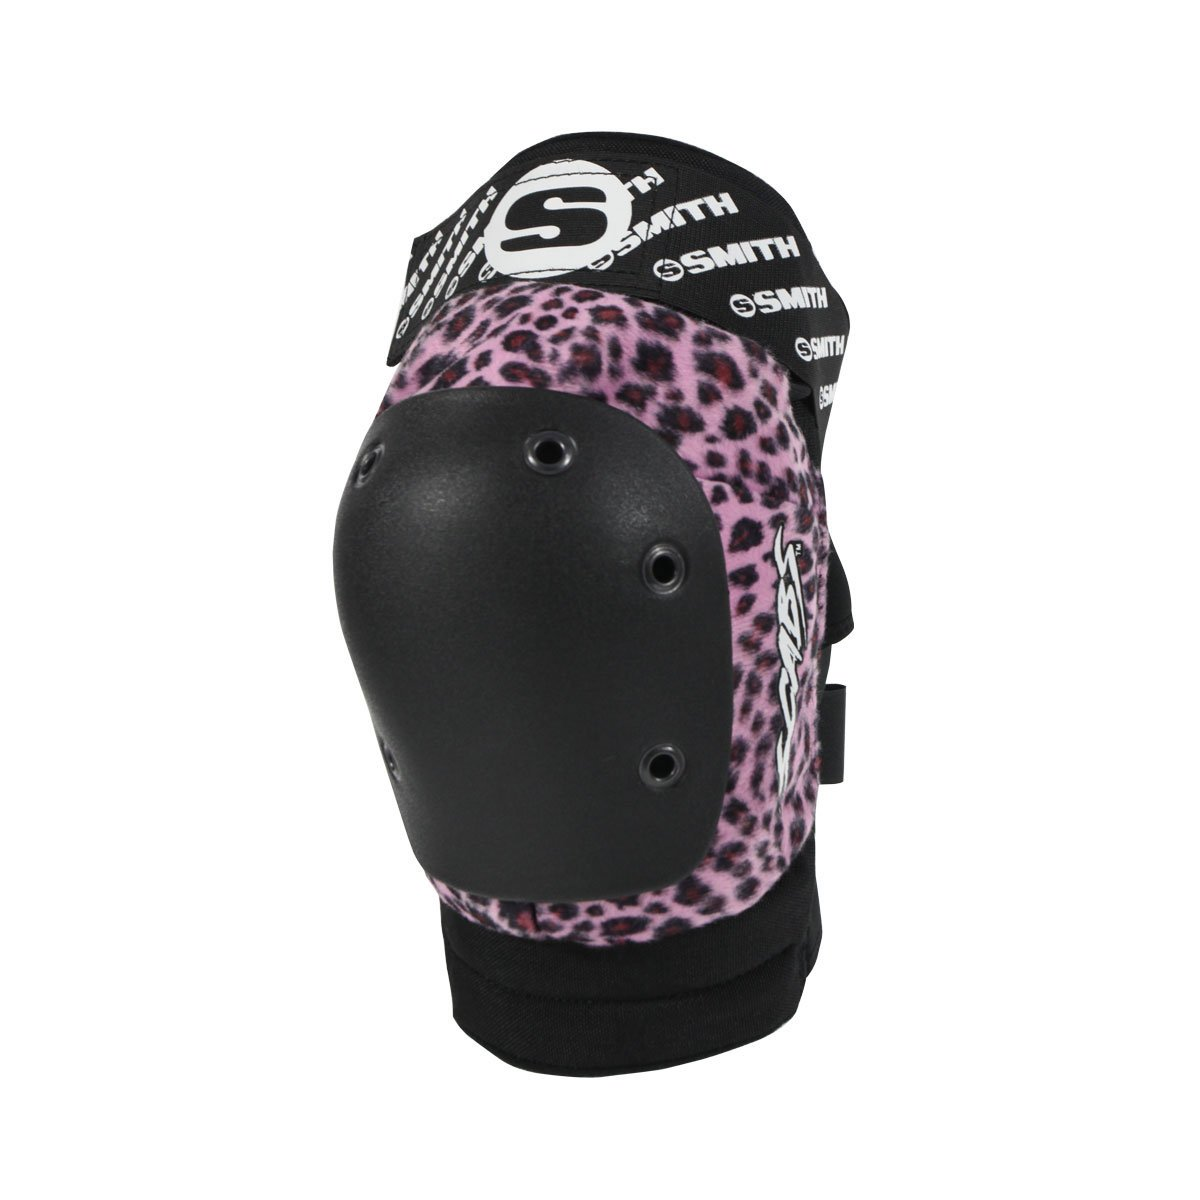 Smith Safety Gear Elite Leopard Knee Pads, Pink Leopard, Large/X-Large